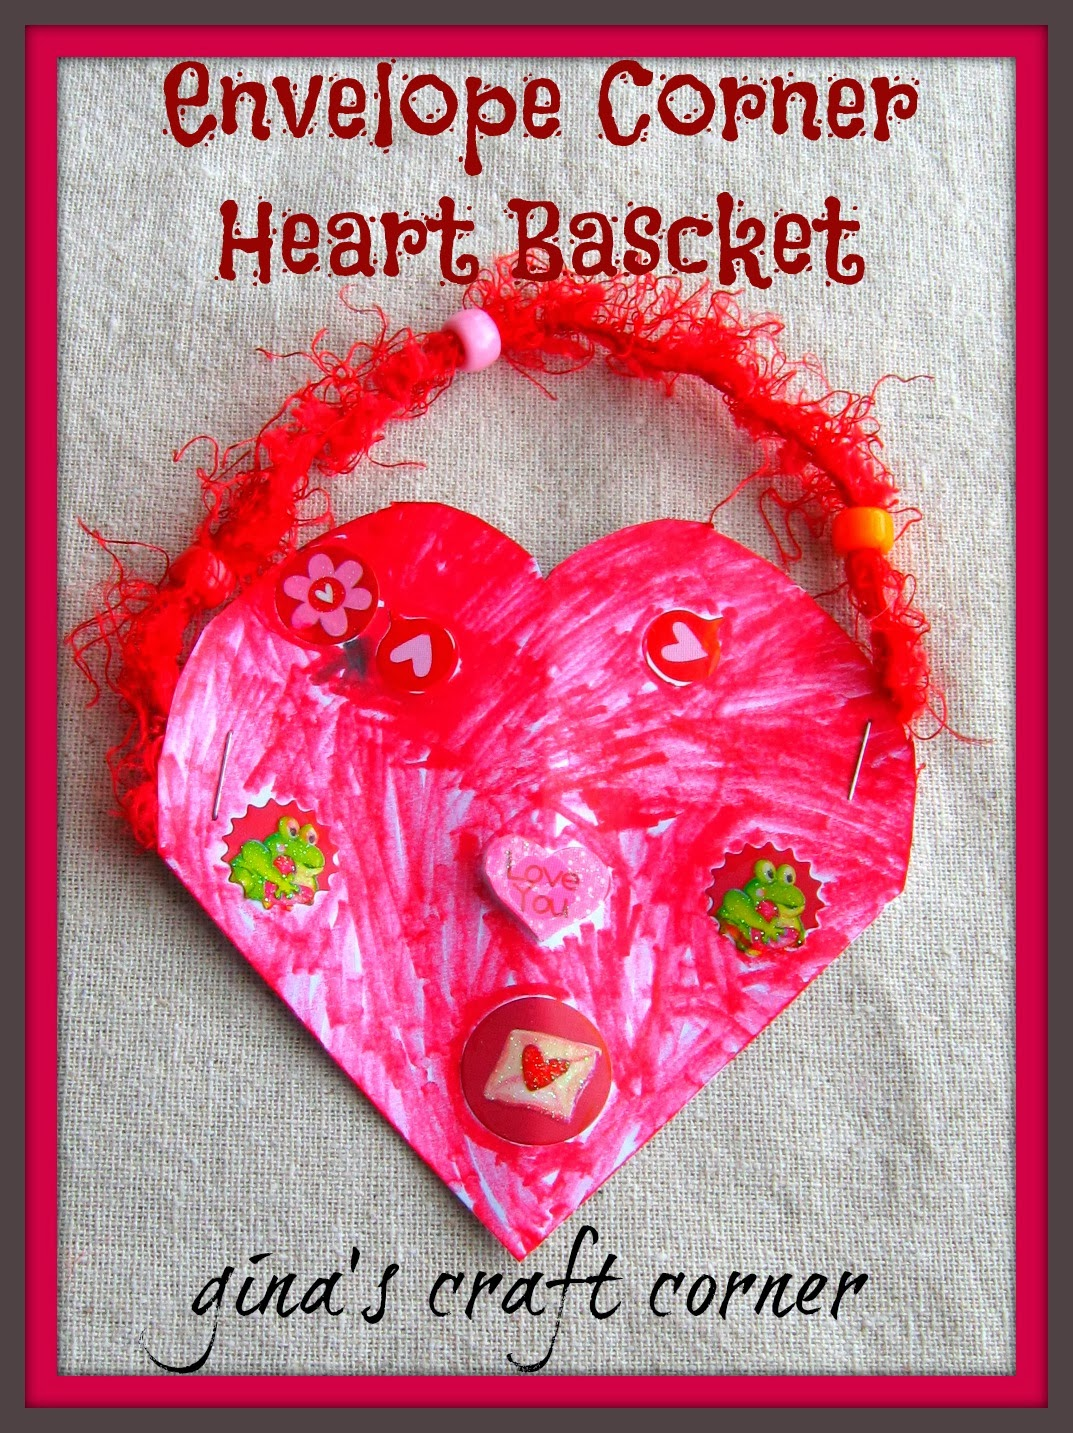 Envelope Corner Heart Basket by Gina's Craft Corner